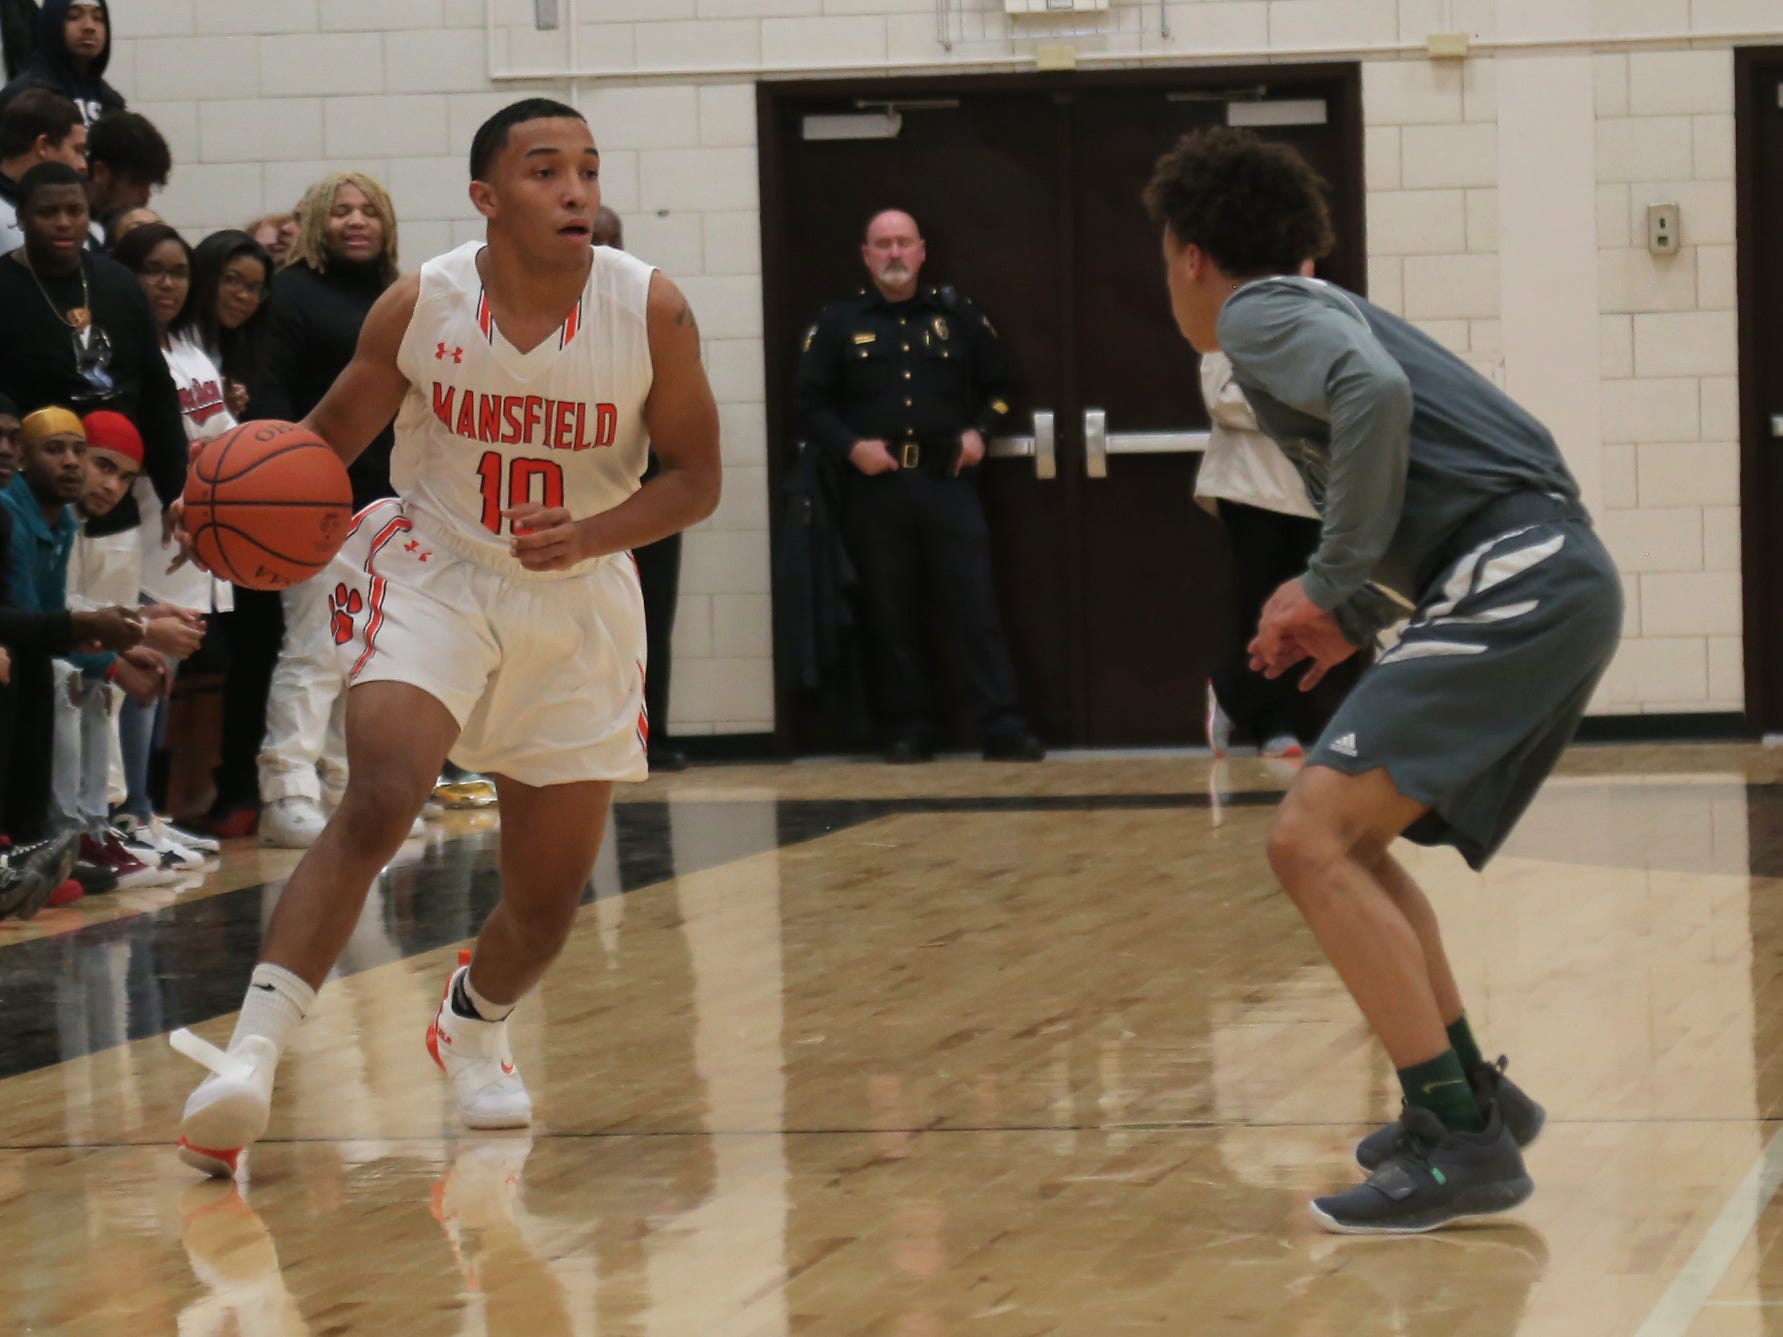 Mansfield Senior's Cameron Todd dribbles the ball  at Malabar Middle School on Friday Night.